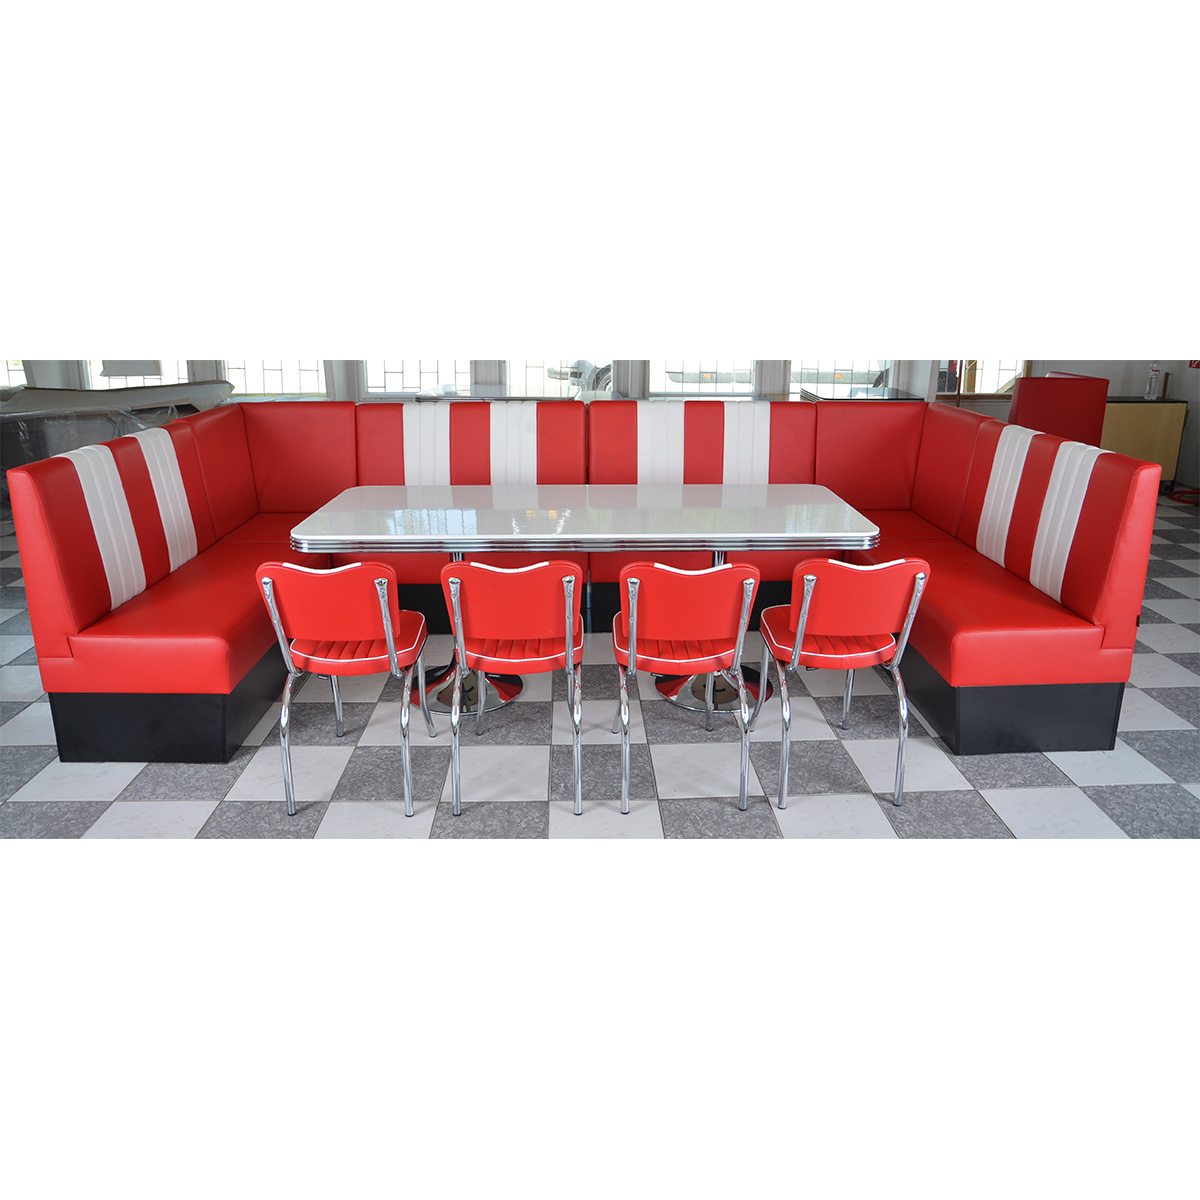 Modular Diner Booth K487 Novio Box For Restaurant And Fast